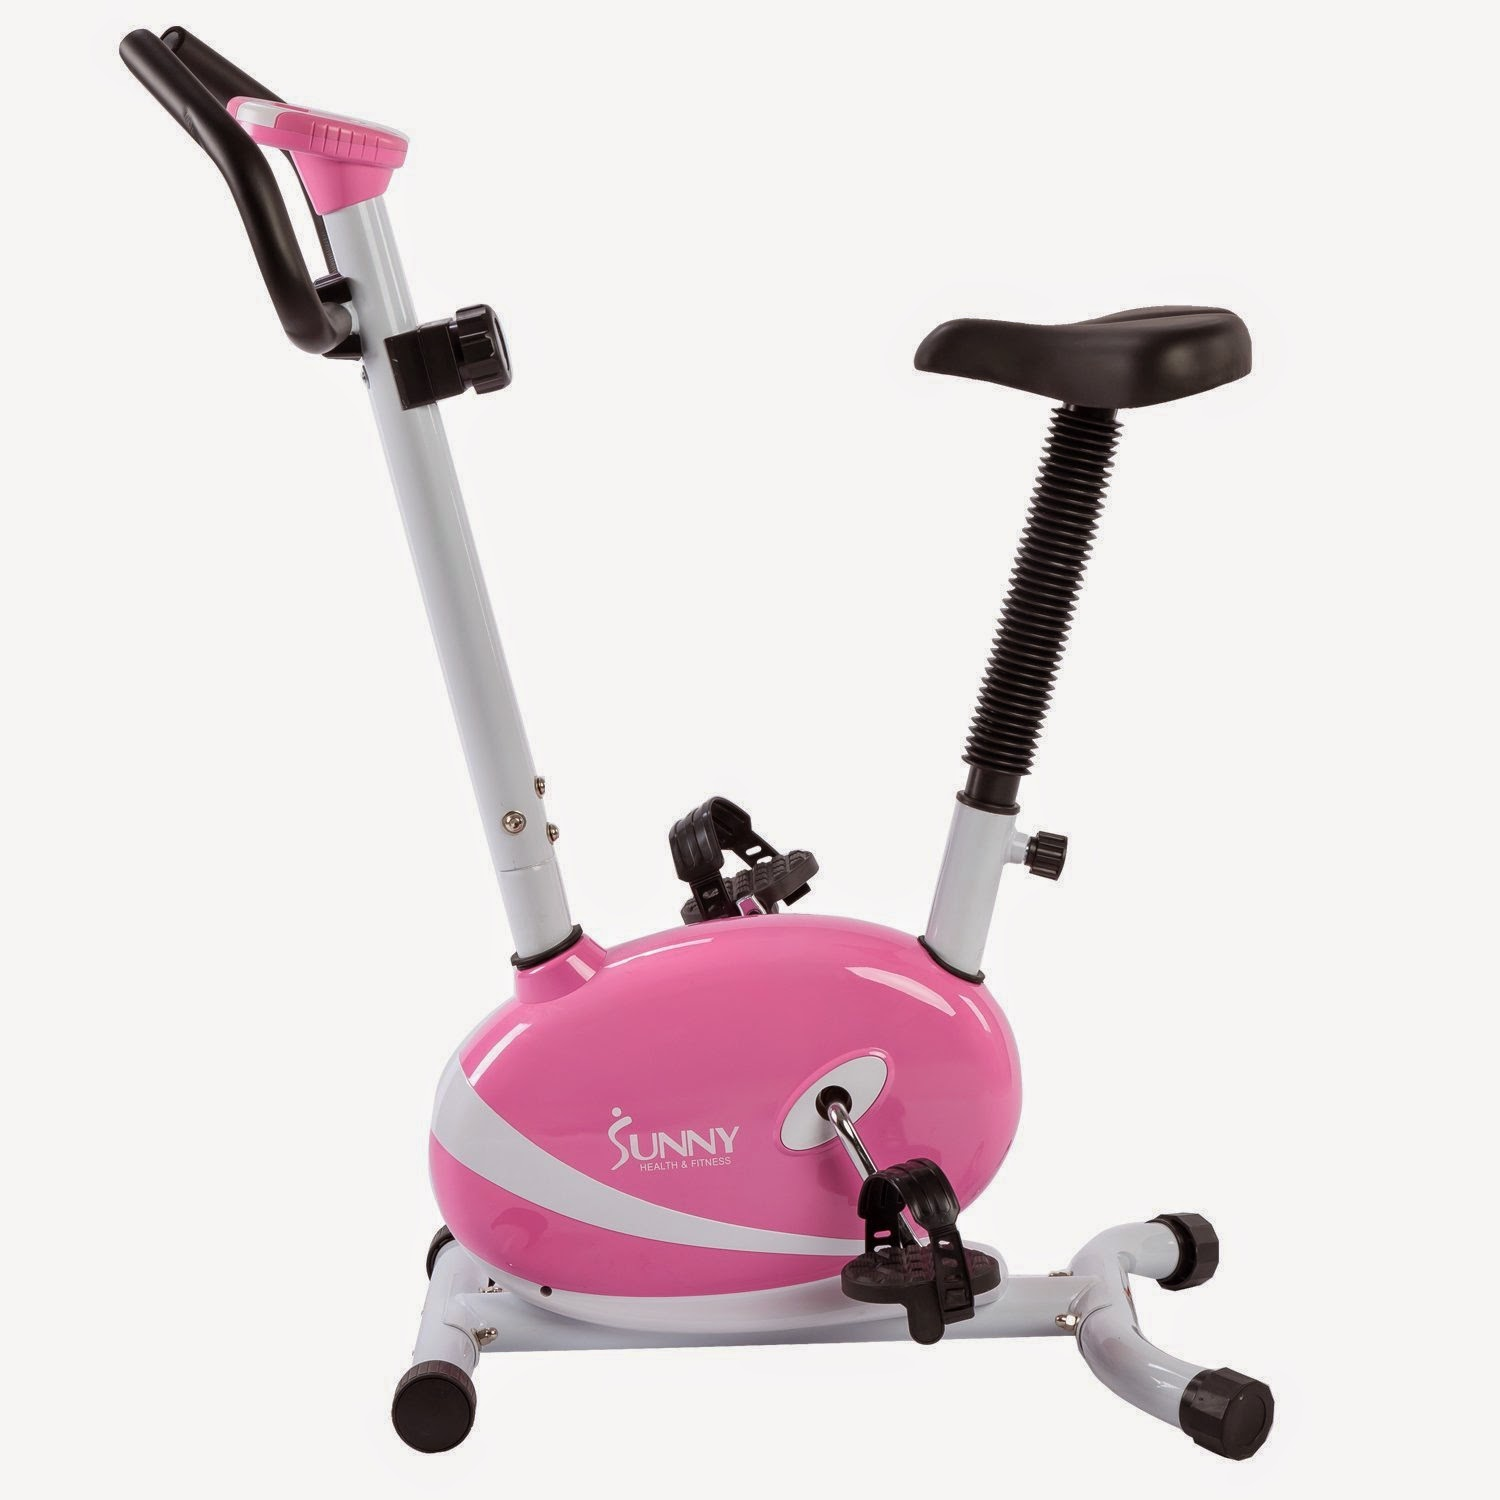 Sunny Health & Fitness Pink Magnetic Upright Exercise Bike, picture, review features & specifications